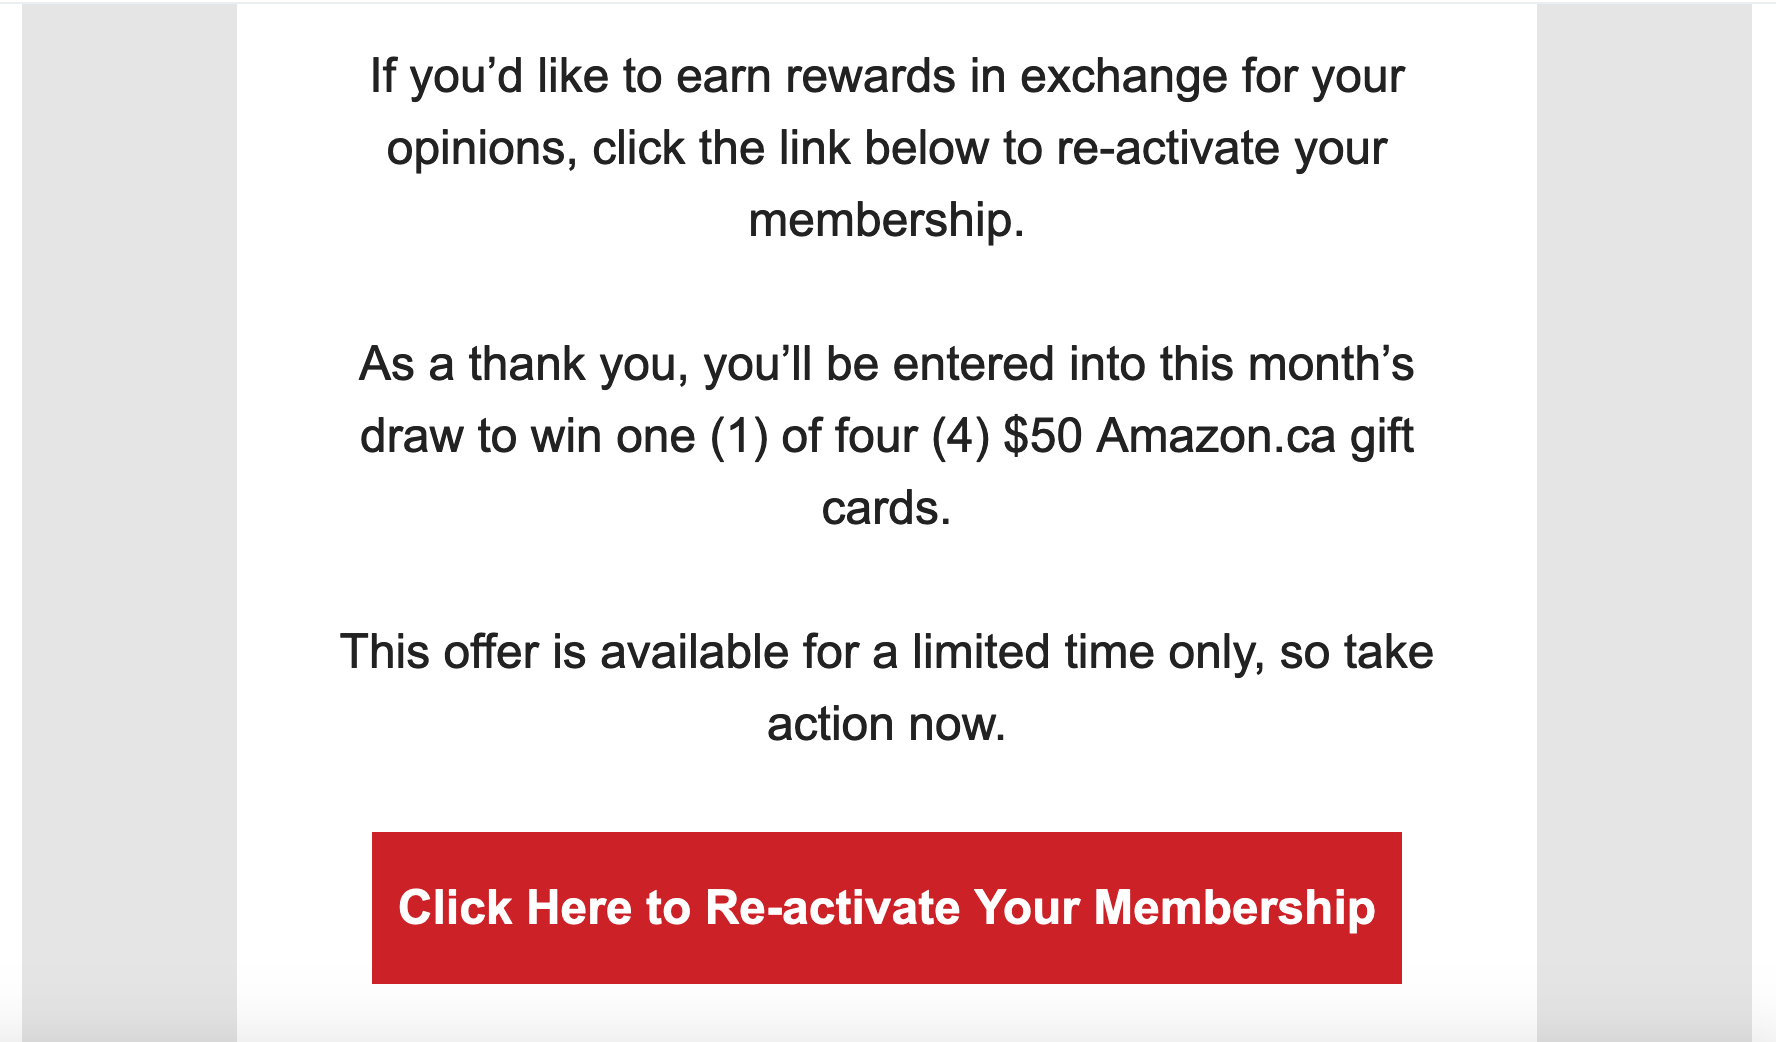 Example of email copy